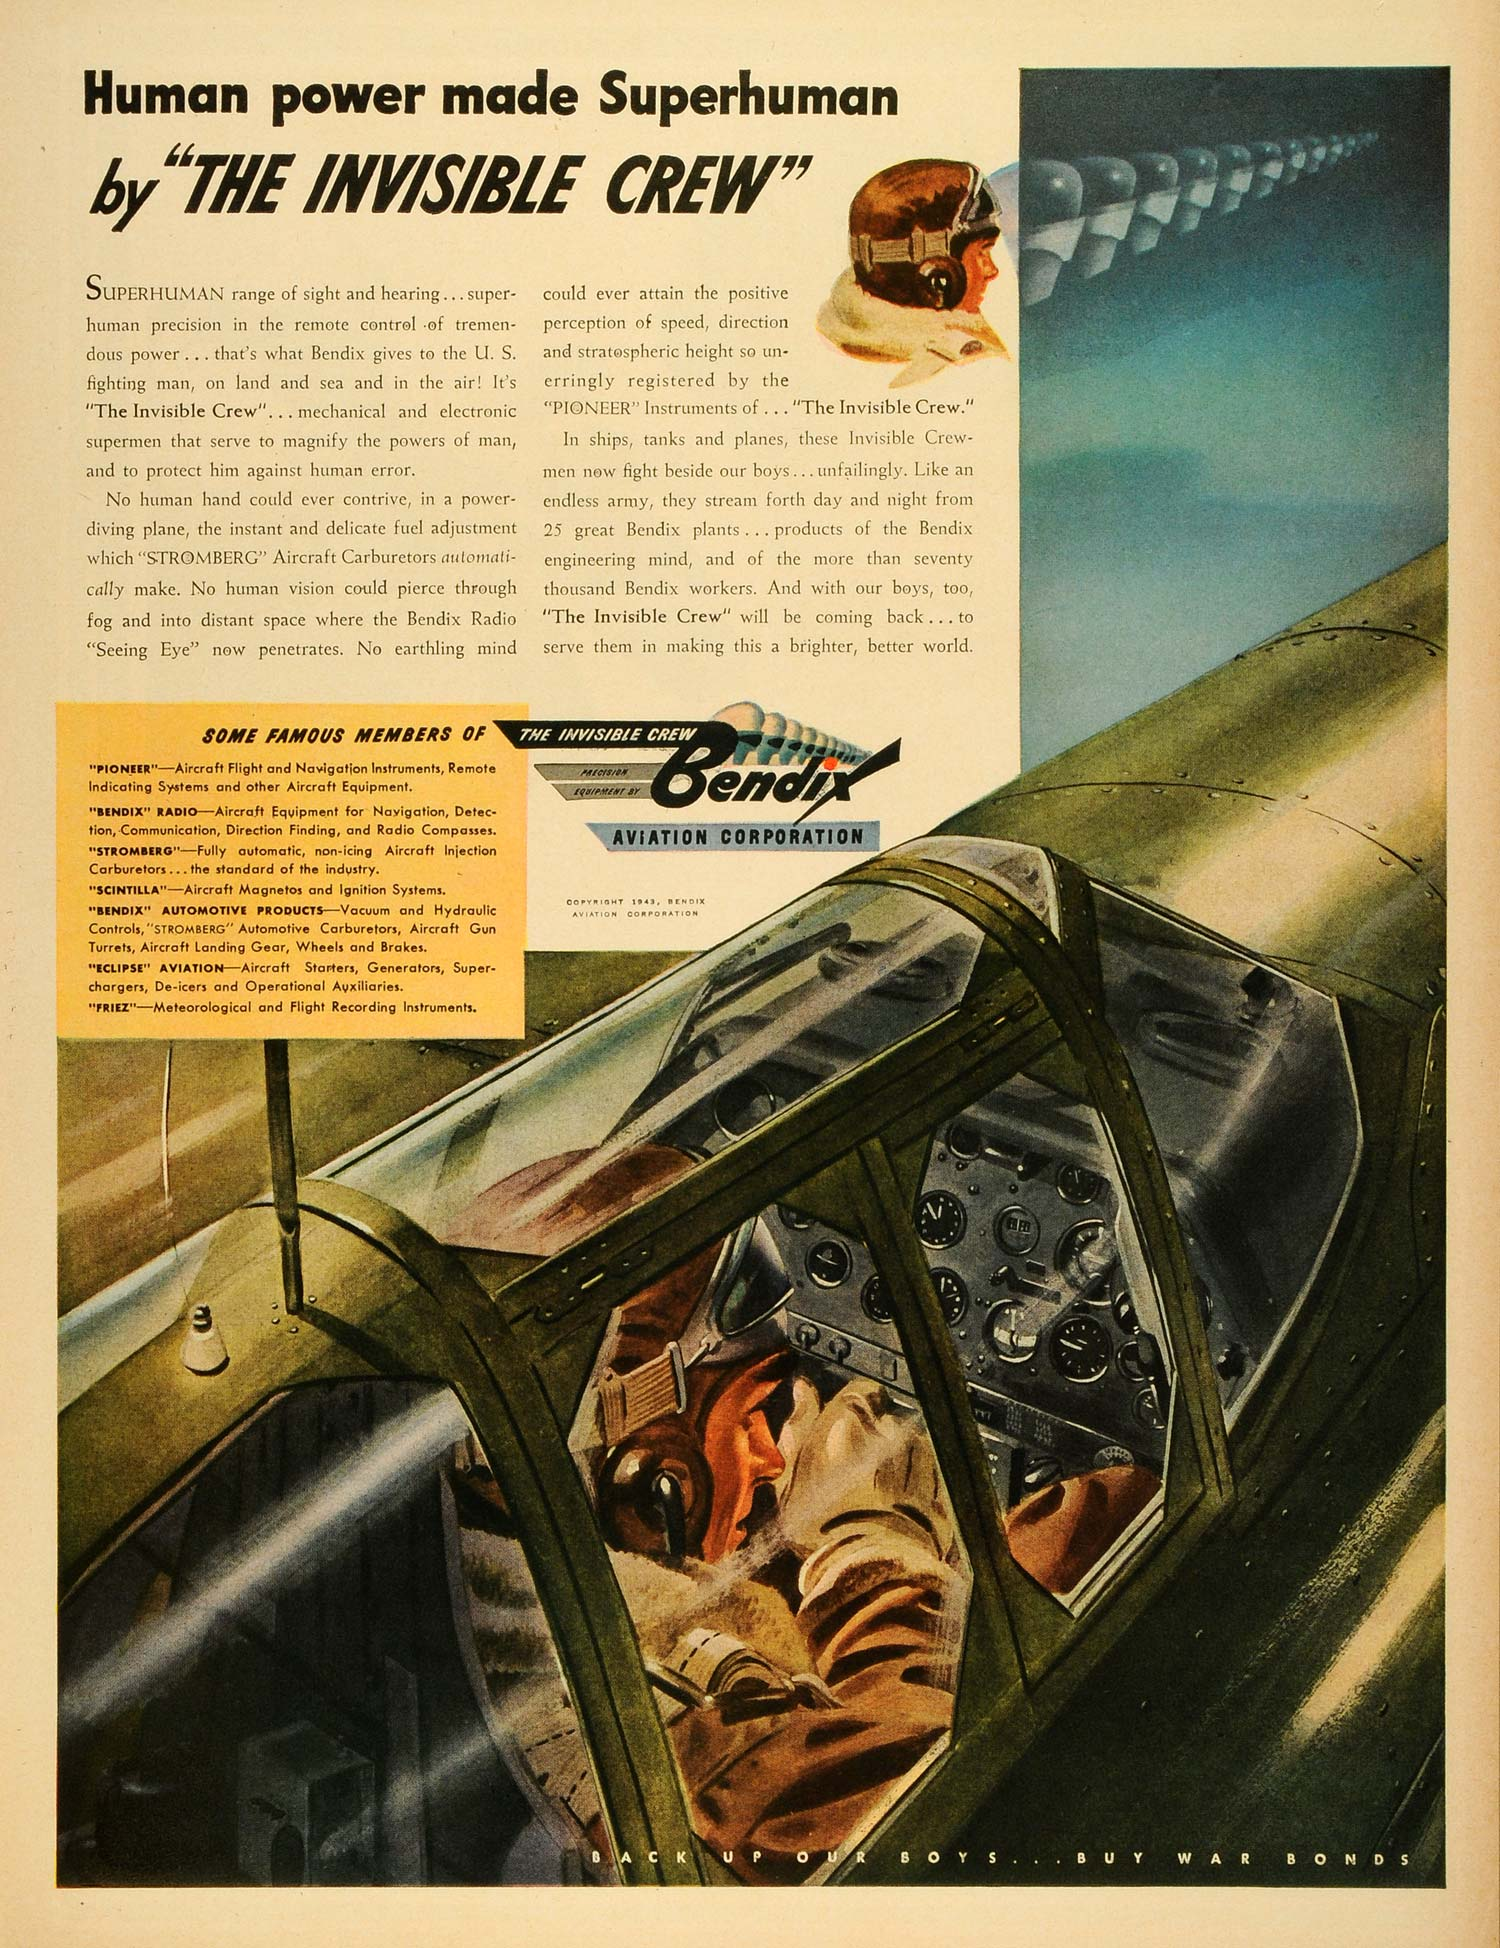 1943 Ad Bendix Aviation Corp Stromberg Aircraft Carburetors Precision LF4